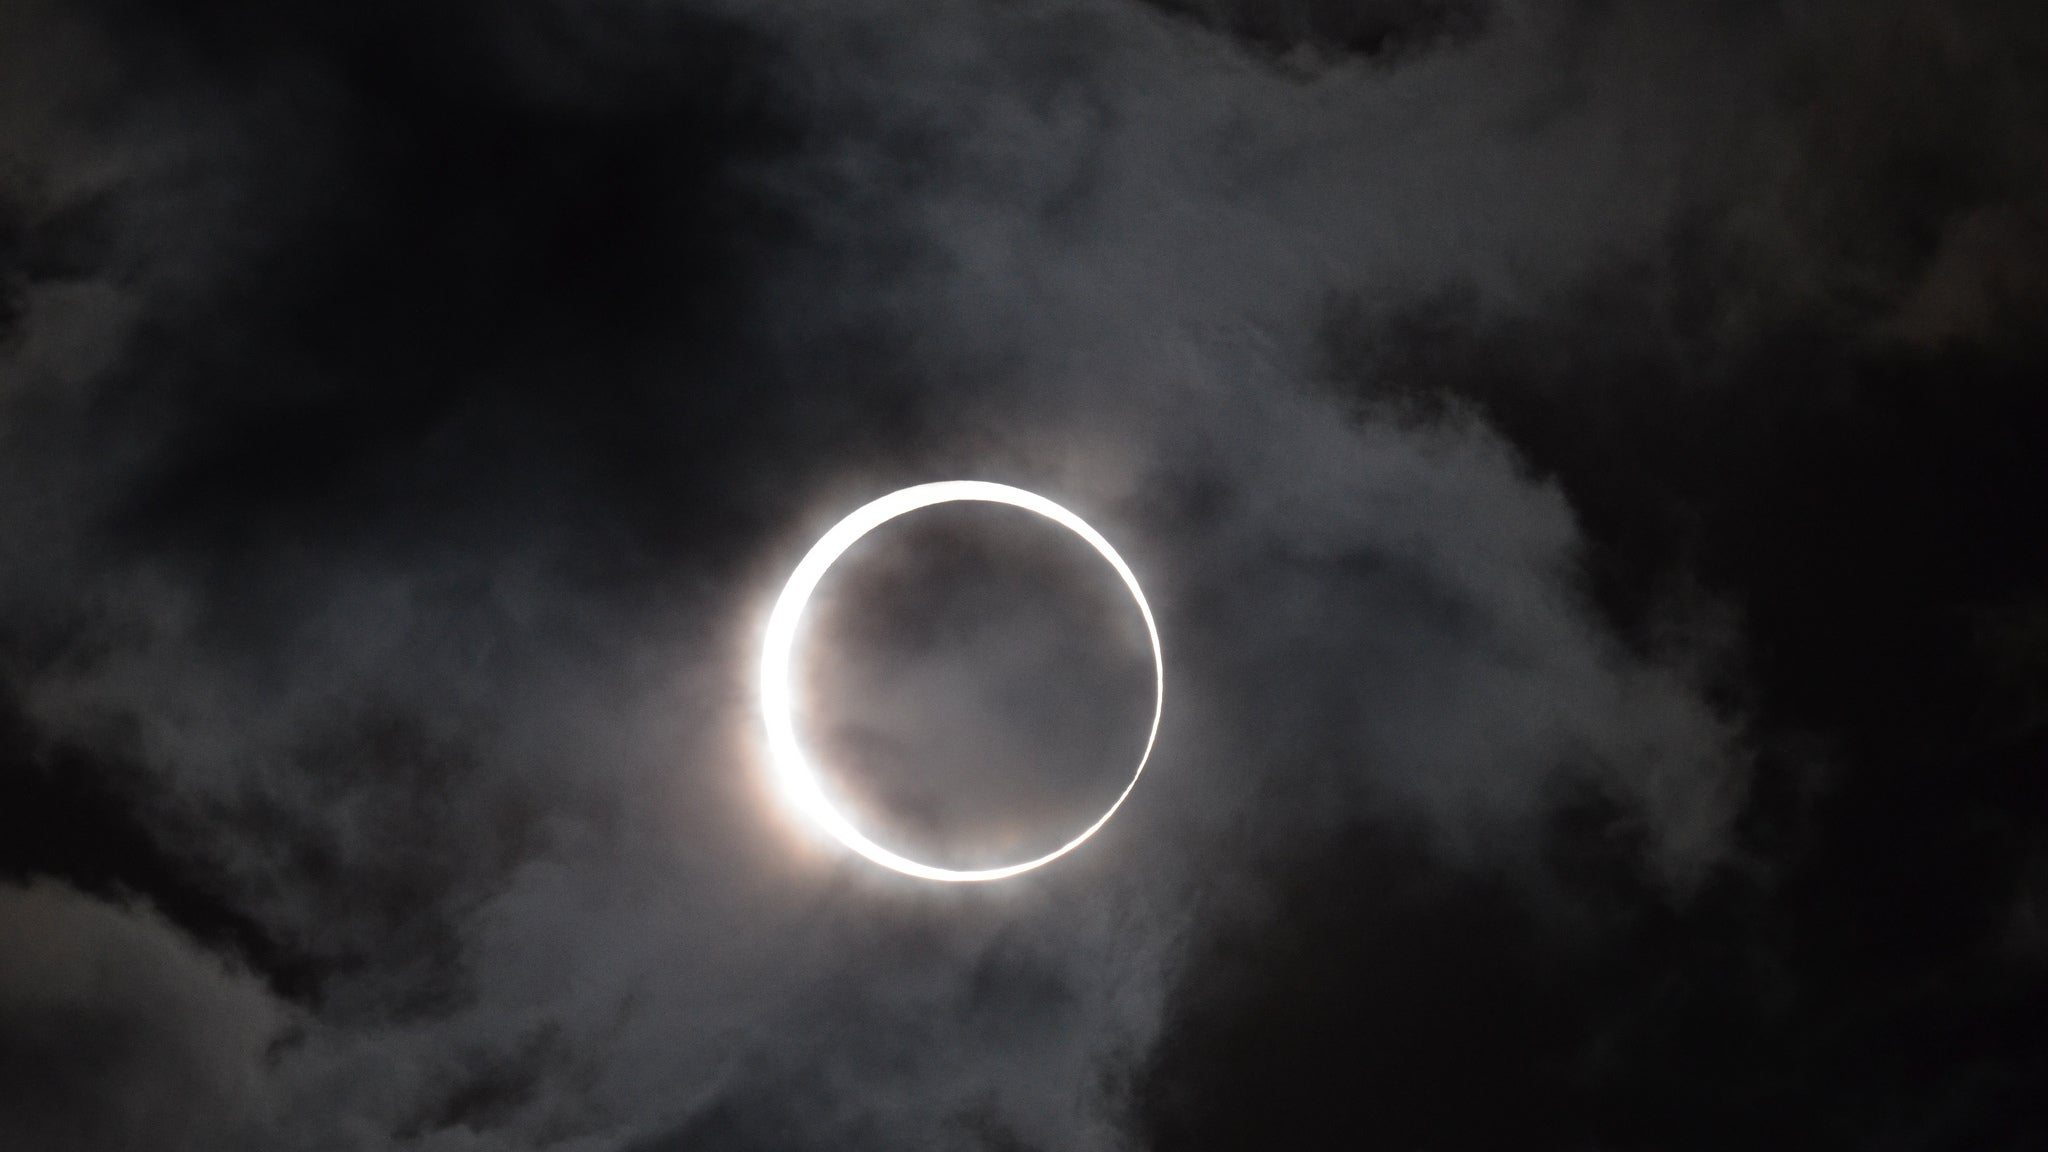 So, Was The Eclipse All It Was Cracked Up To Be?